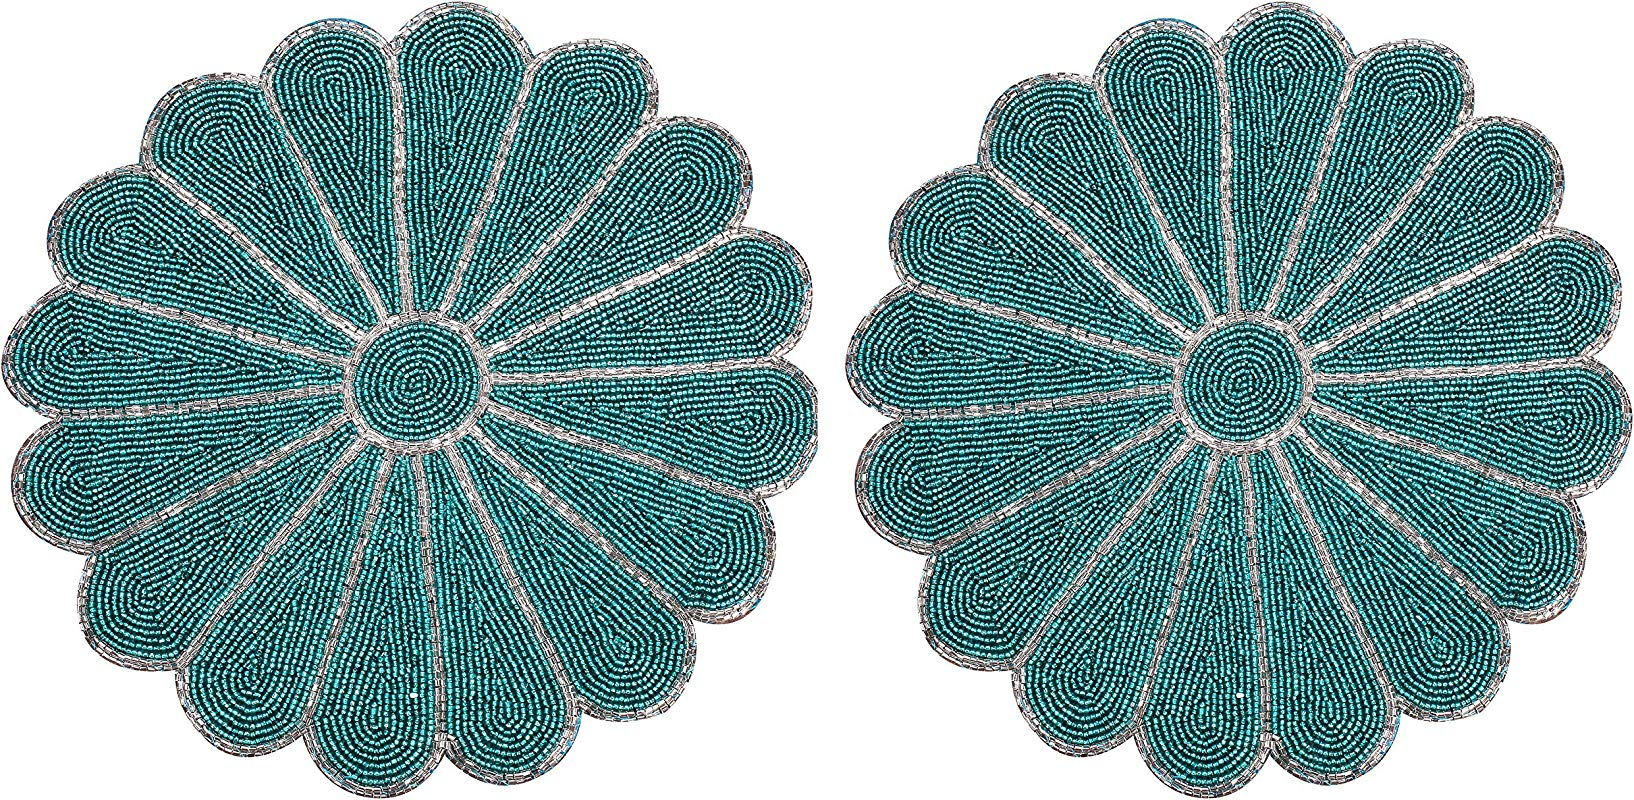 Farmhouse Handmade Round Beaded Placemat For Coffee Table Dining Table In Silver Teal Colour Pack Of 2 Measure 13 Inches For Gathering Thanksgiving Occasional Decoration And Family Celebrations